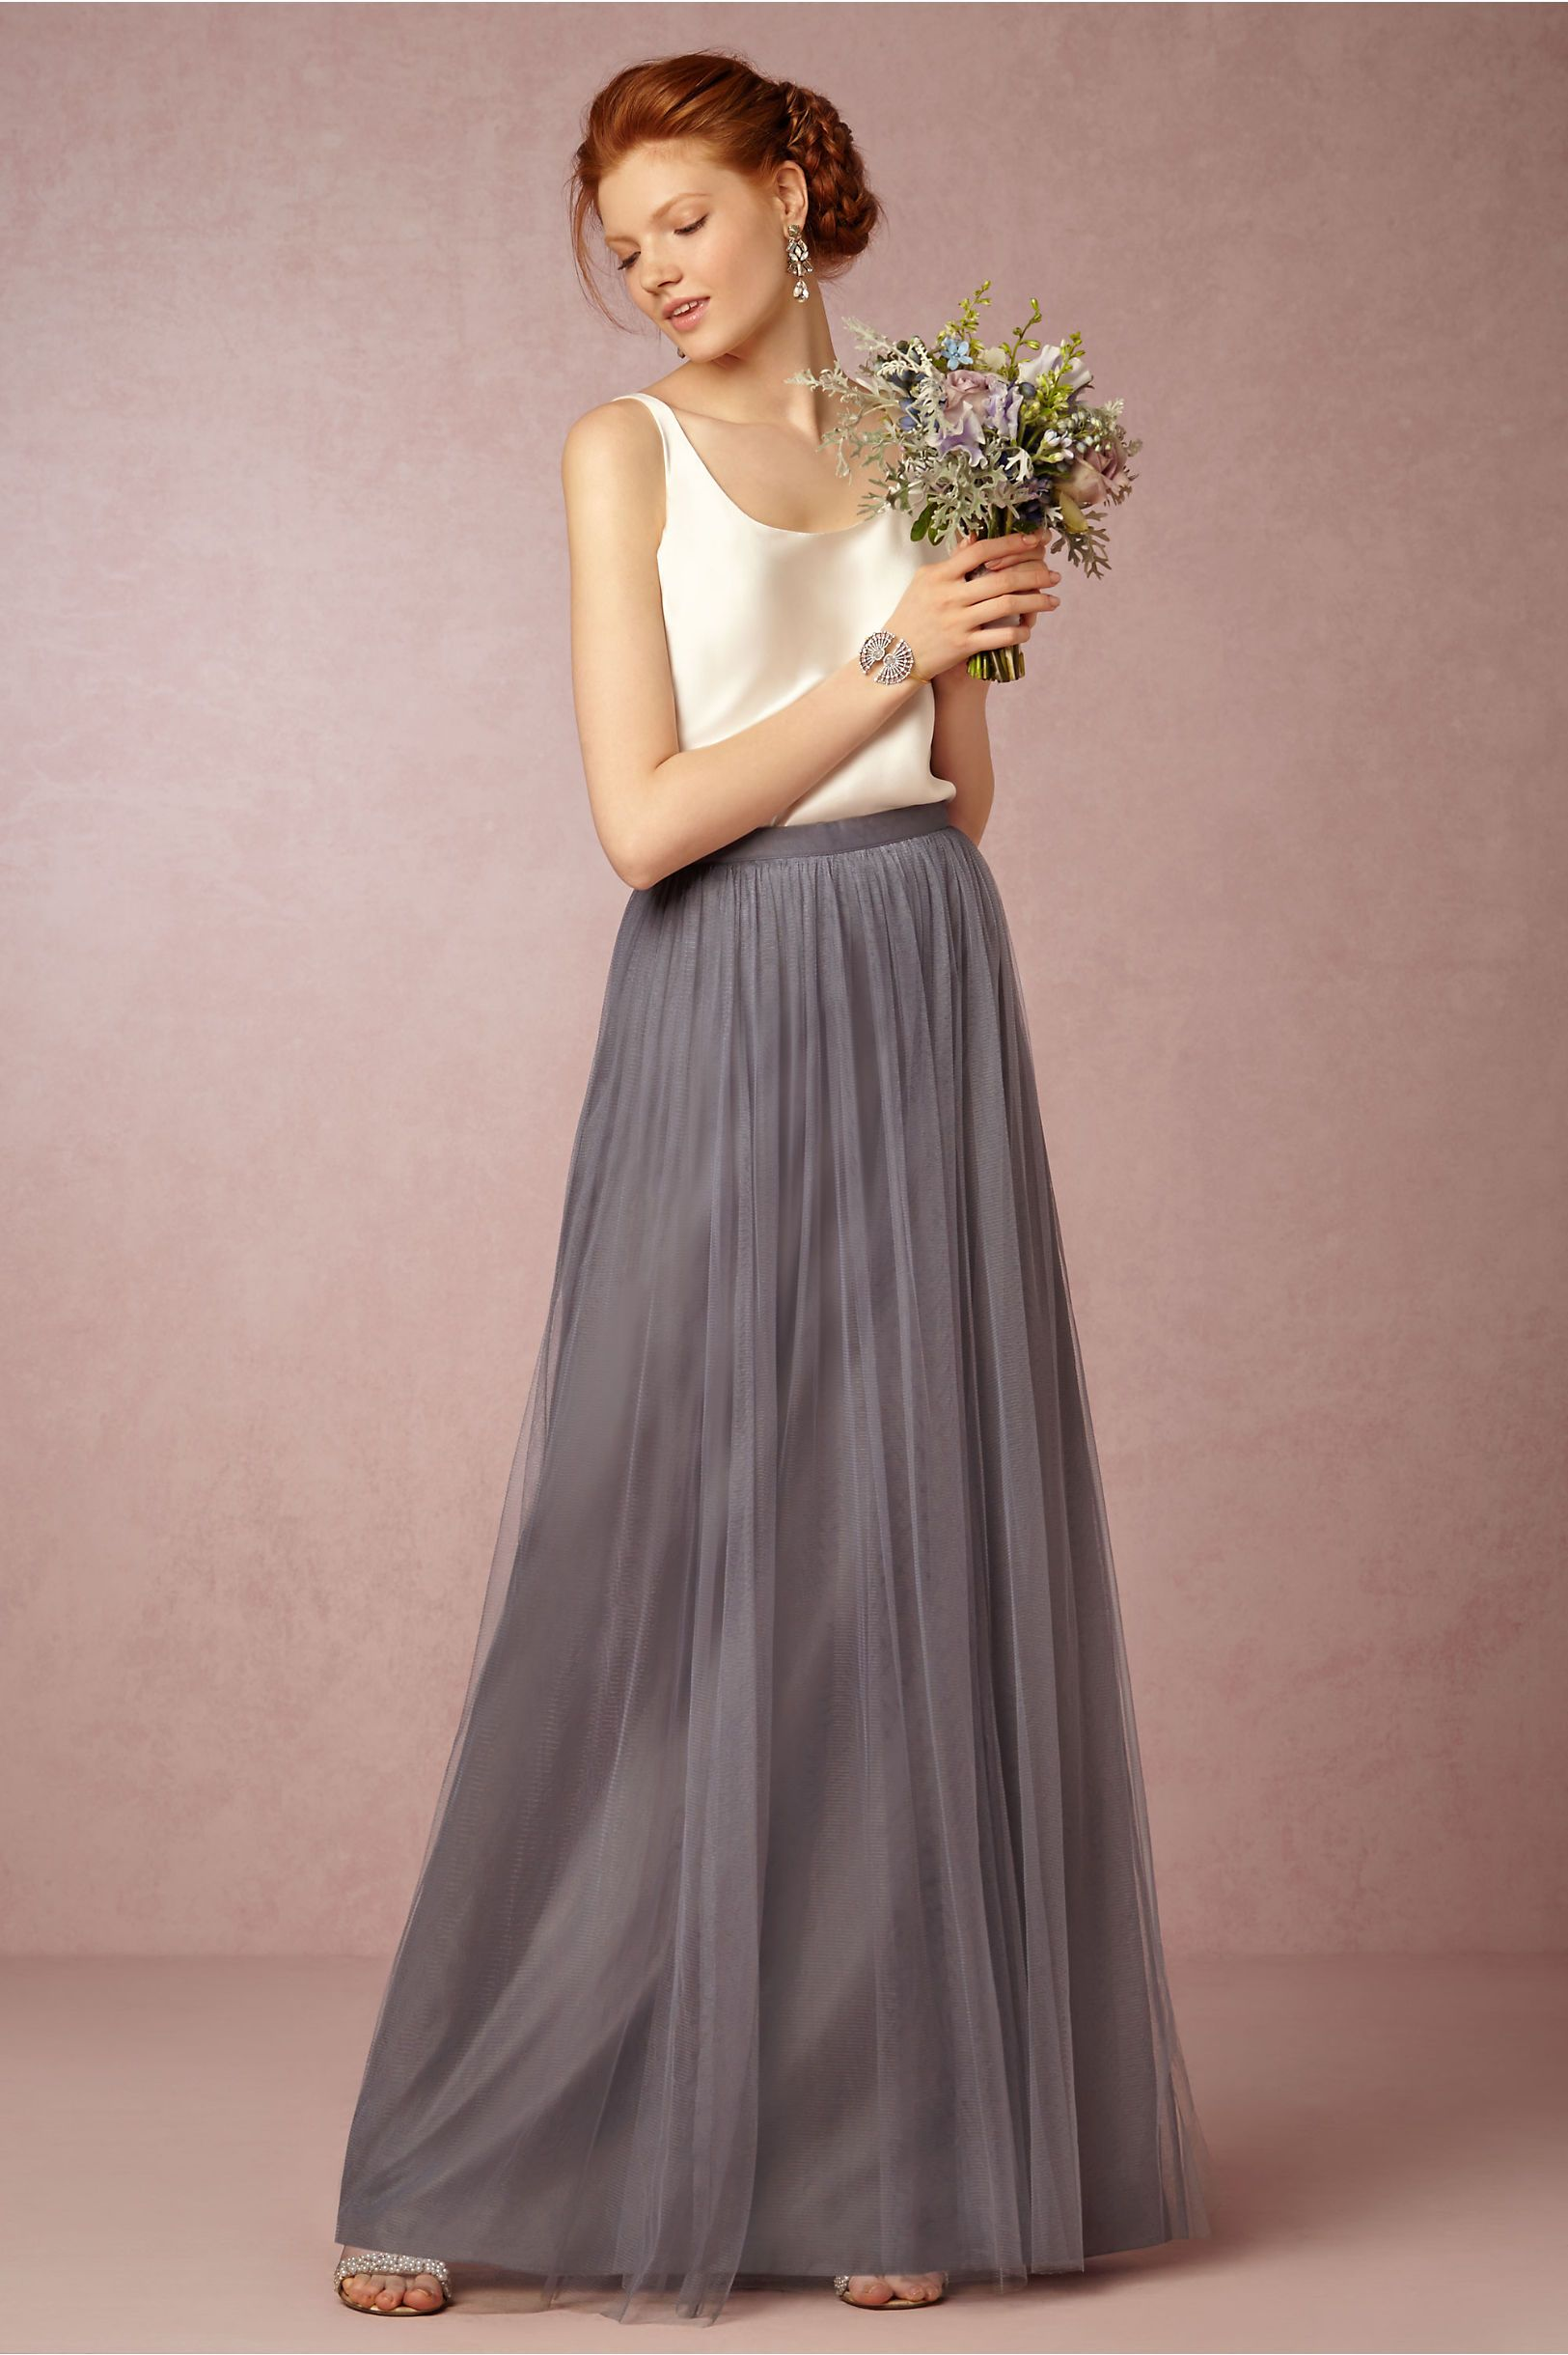 78f2f6fd9 bridesmaid skirt + topper separates | Louise Tulle Skirt in hydrangea from  BHLDN